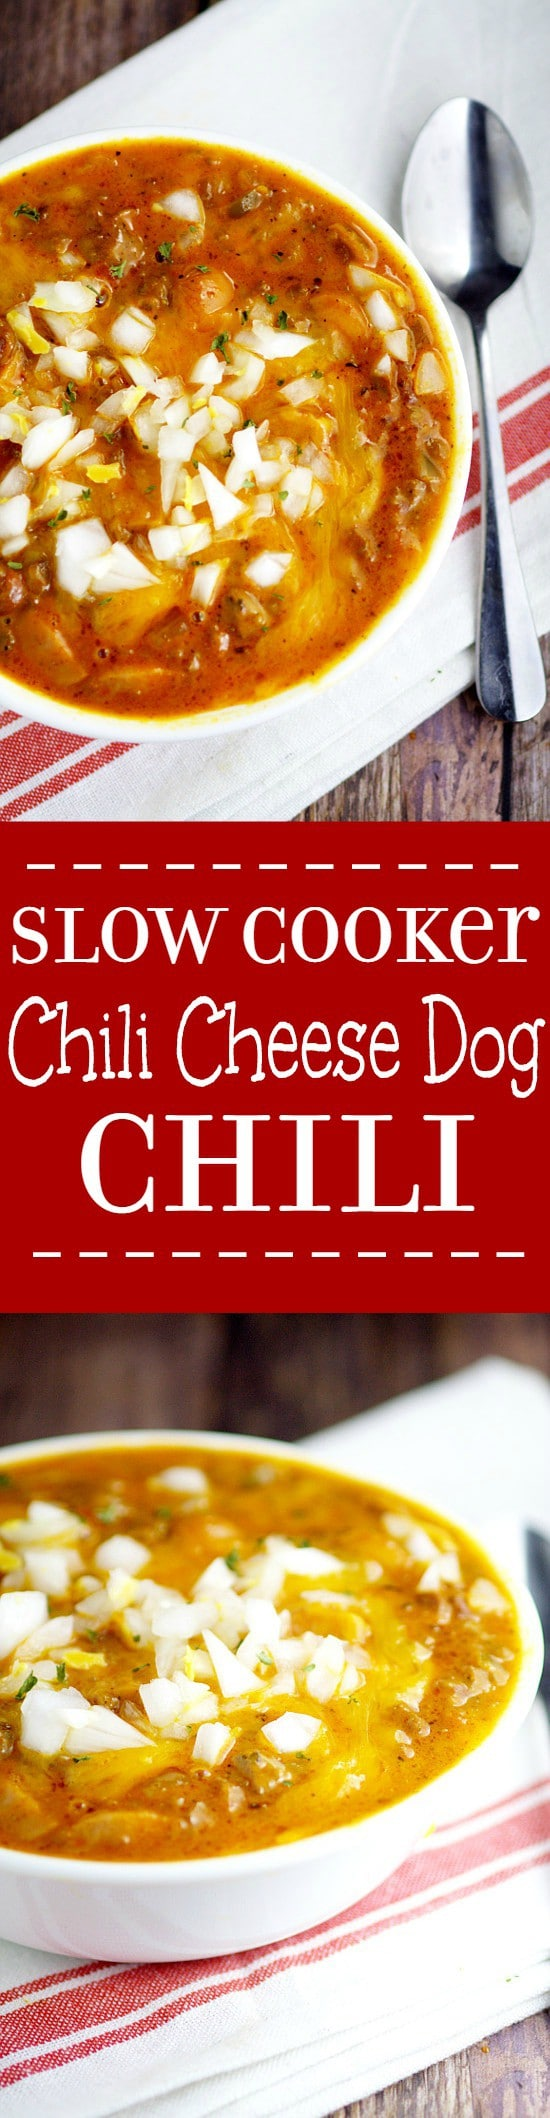 Slow Cooker Chili Cheese Dog Chili Recipe. Traditional beef chili recipe with the classic, gooey cheesy flavors of chili cheese dogs meld together with perfection right in the Crockpot in this Slow Cooker Chili Cheese Dog Chili recipe. This would be so fabulous for a chilly day!  And look at all that delicious gooey cheese!